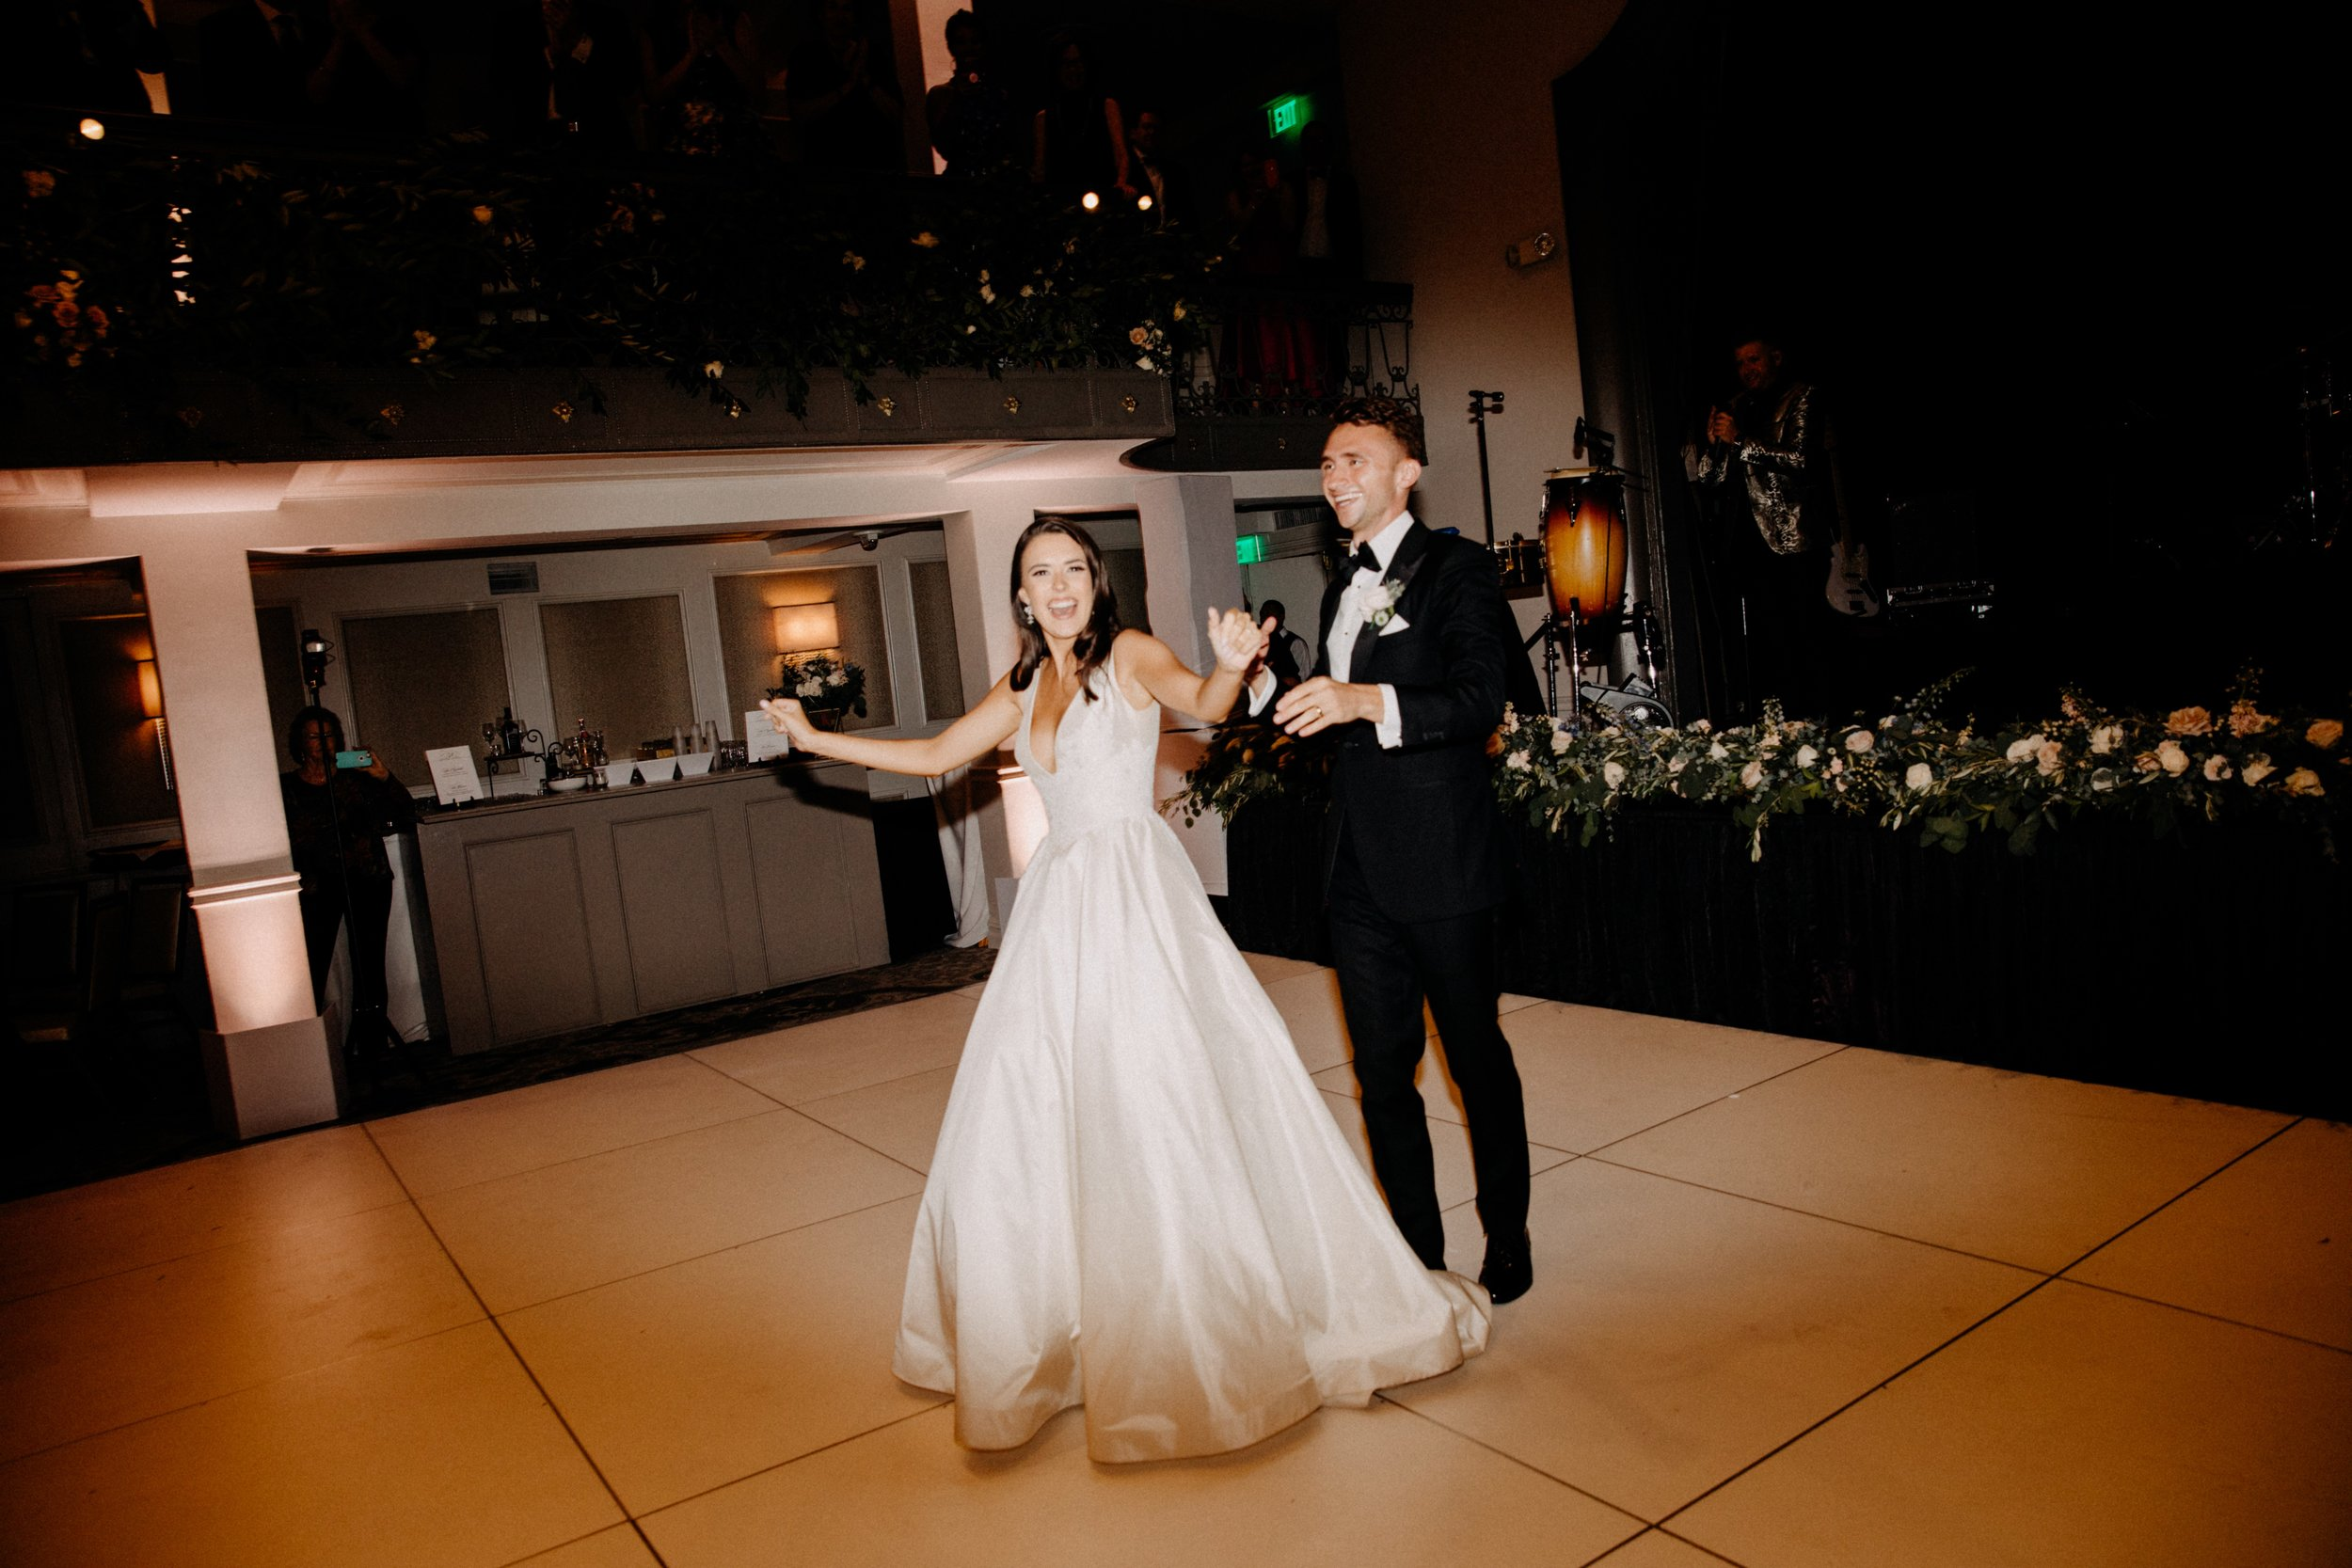 st-anthony-hotel-wedding-photography-10133san-antonio.JPG